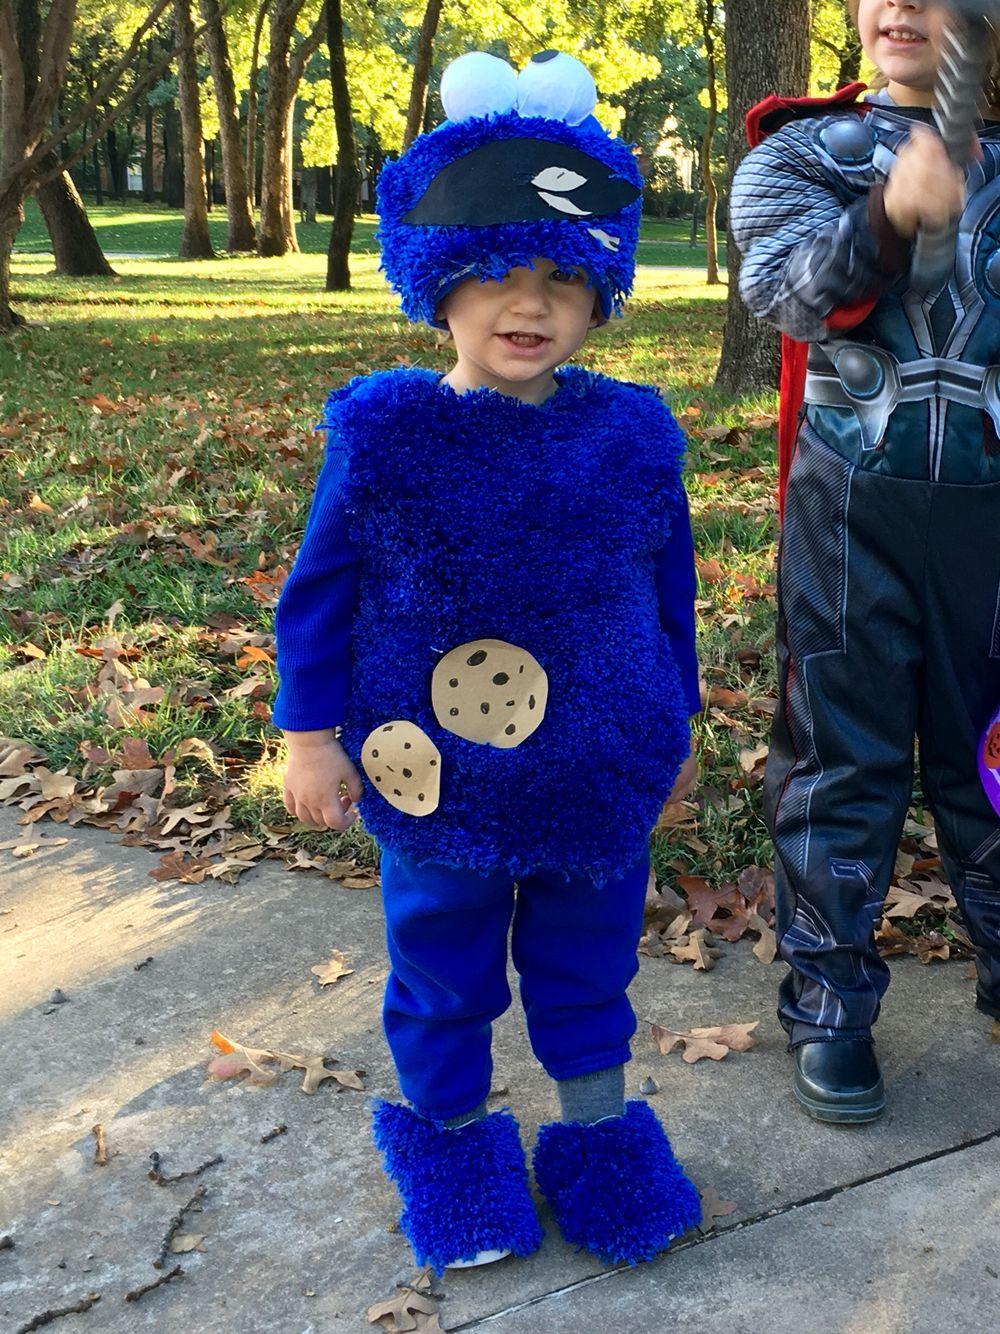 Diy Toddler Cookie Monster Costume Made With Blue Sweat Pants Blue Long Sleeve Shirt Cookie Monster Costume Toddler Cookie Monster Costume Monster Costumes